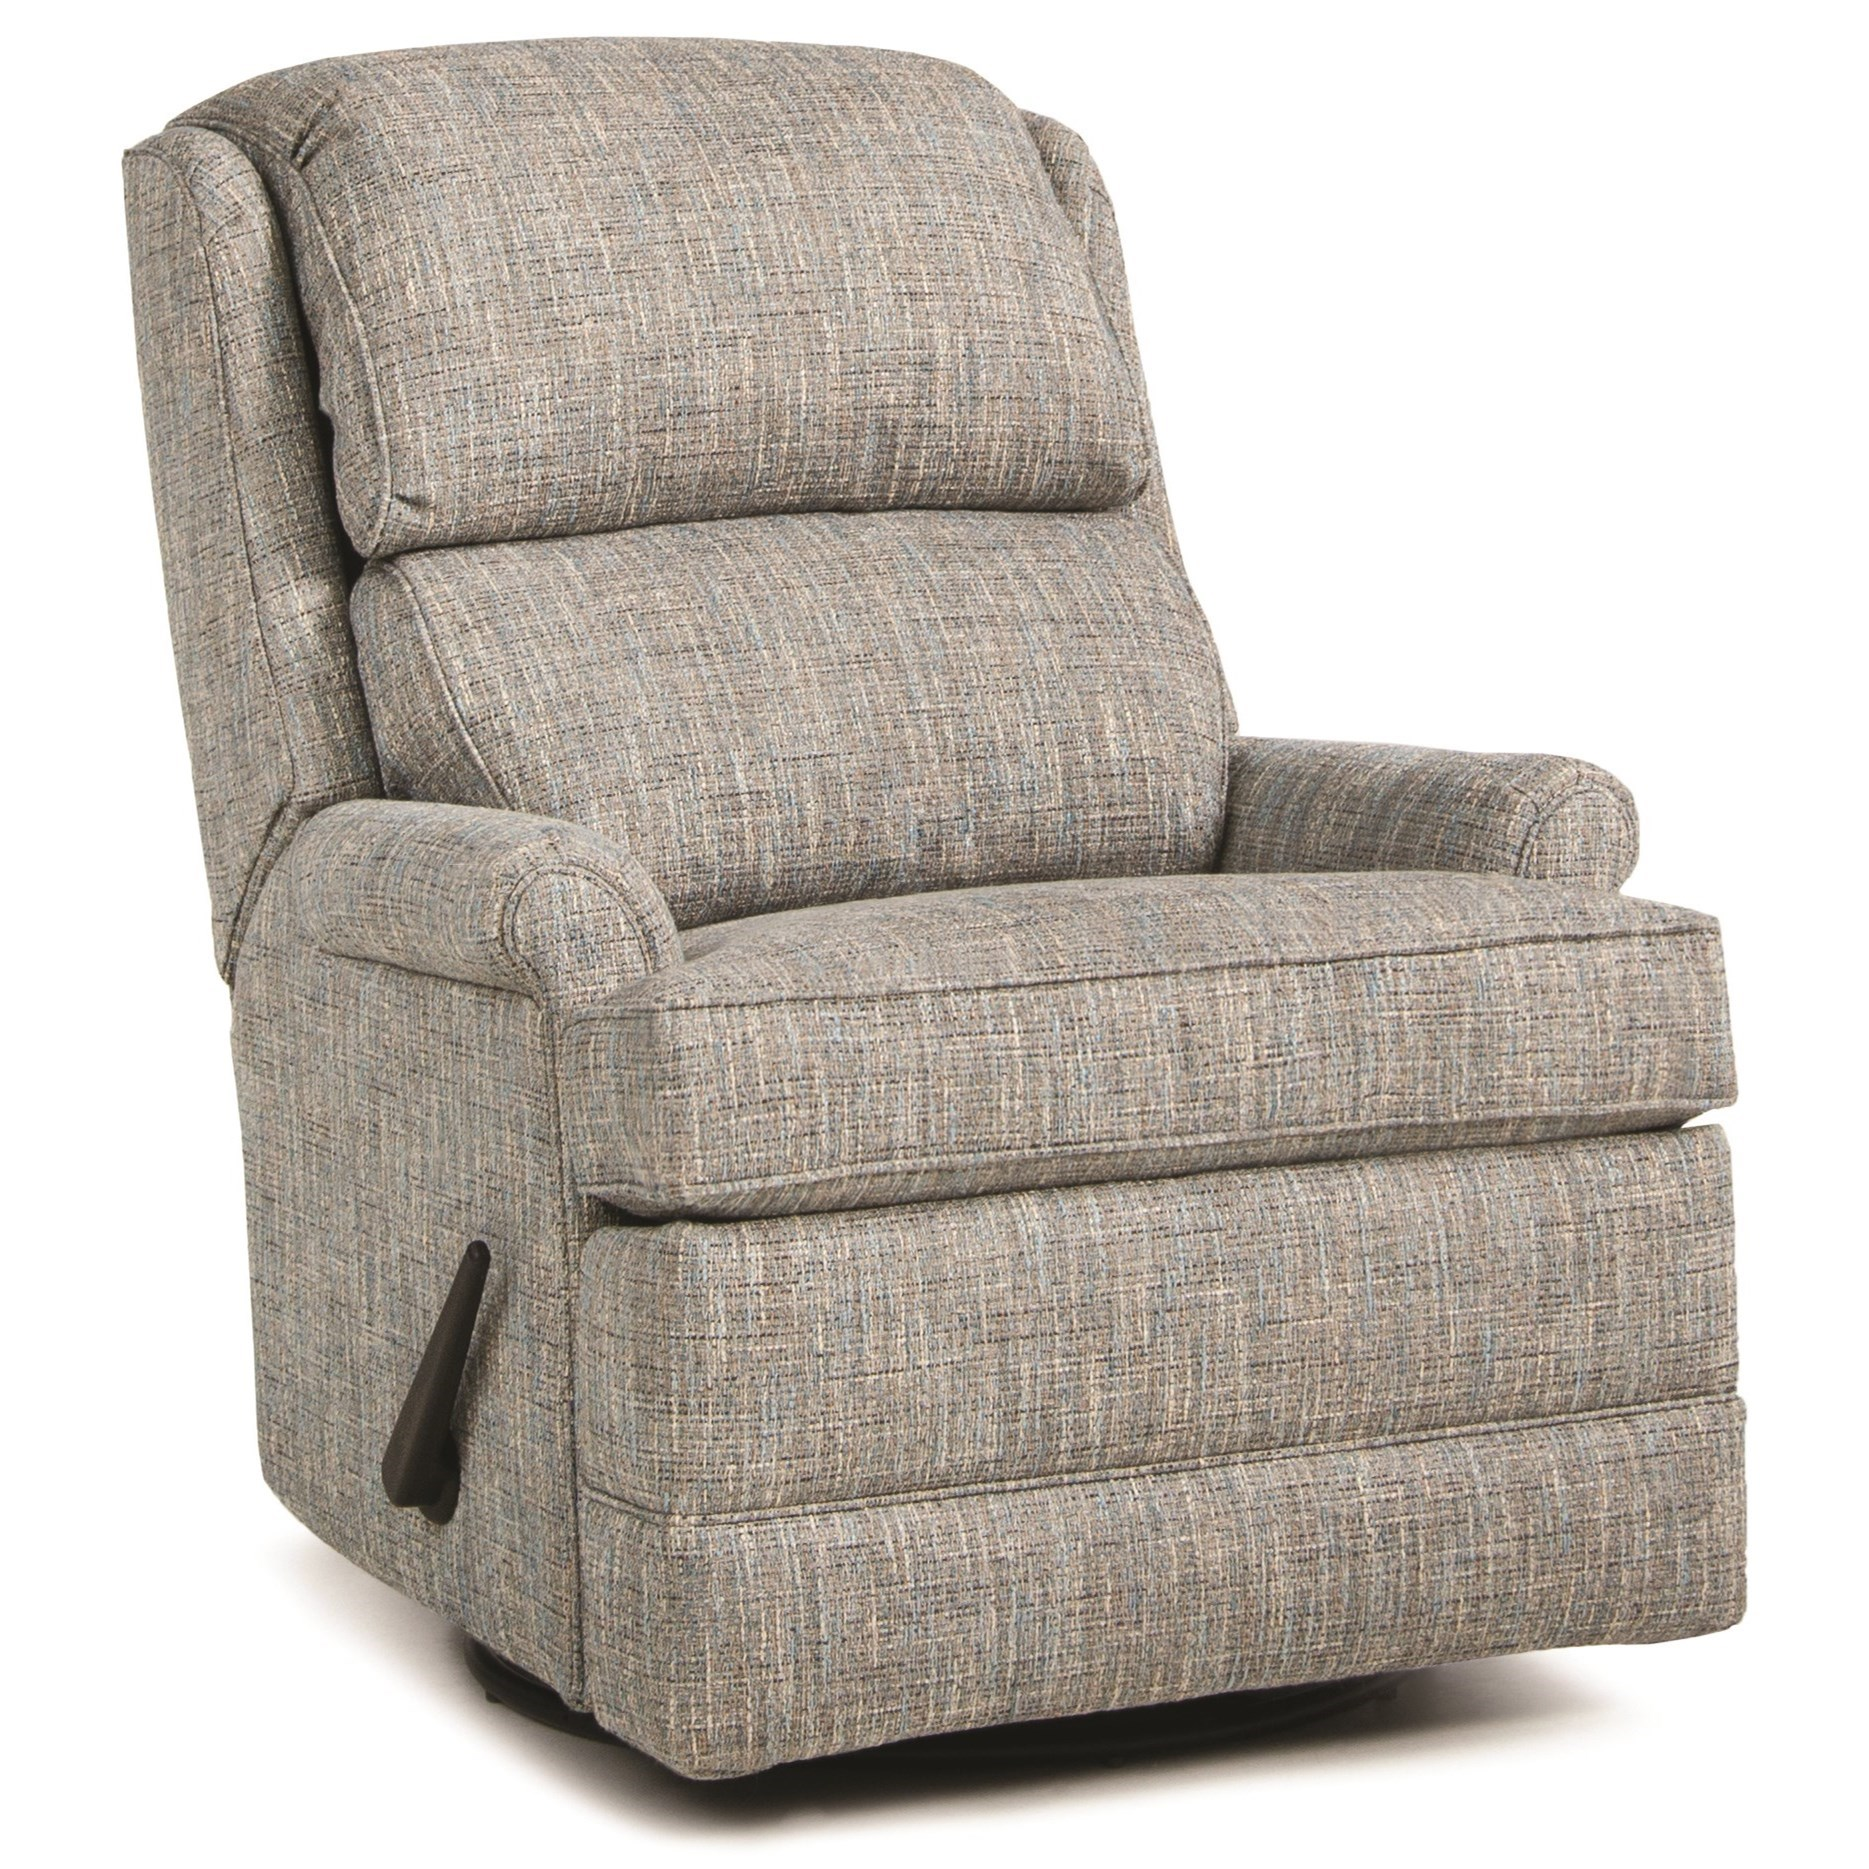 707 Recliner by Smith Brothers at Pilgrim Furniture City